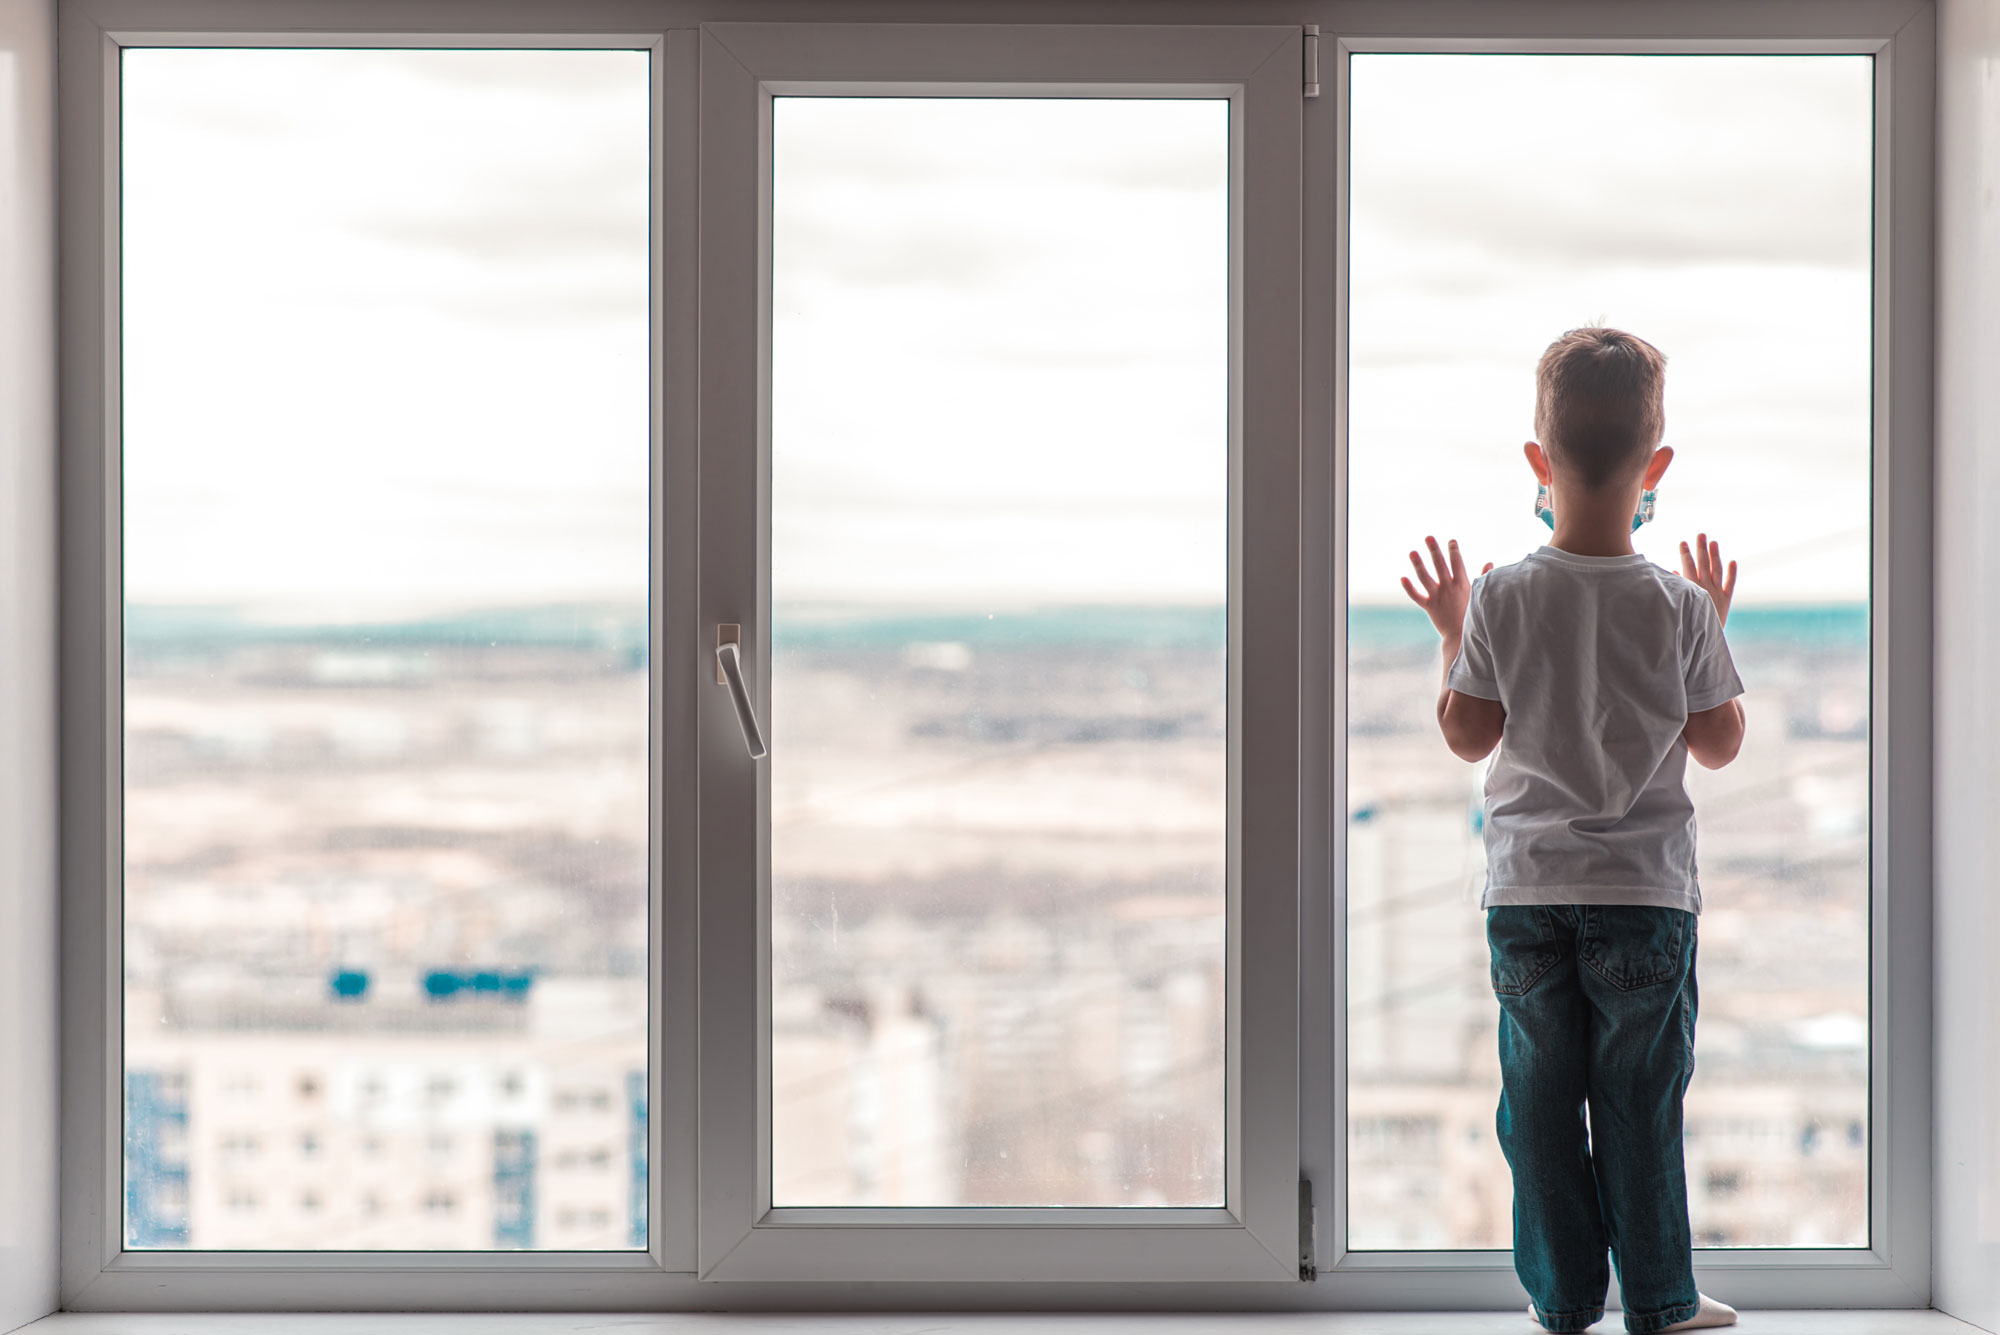 Help kids cope with stress-induced amidst Covid pandemic fears and lockdown repercussions.